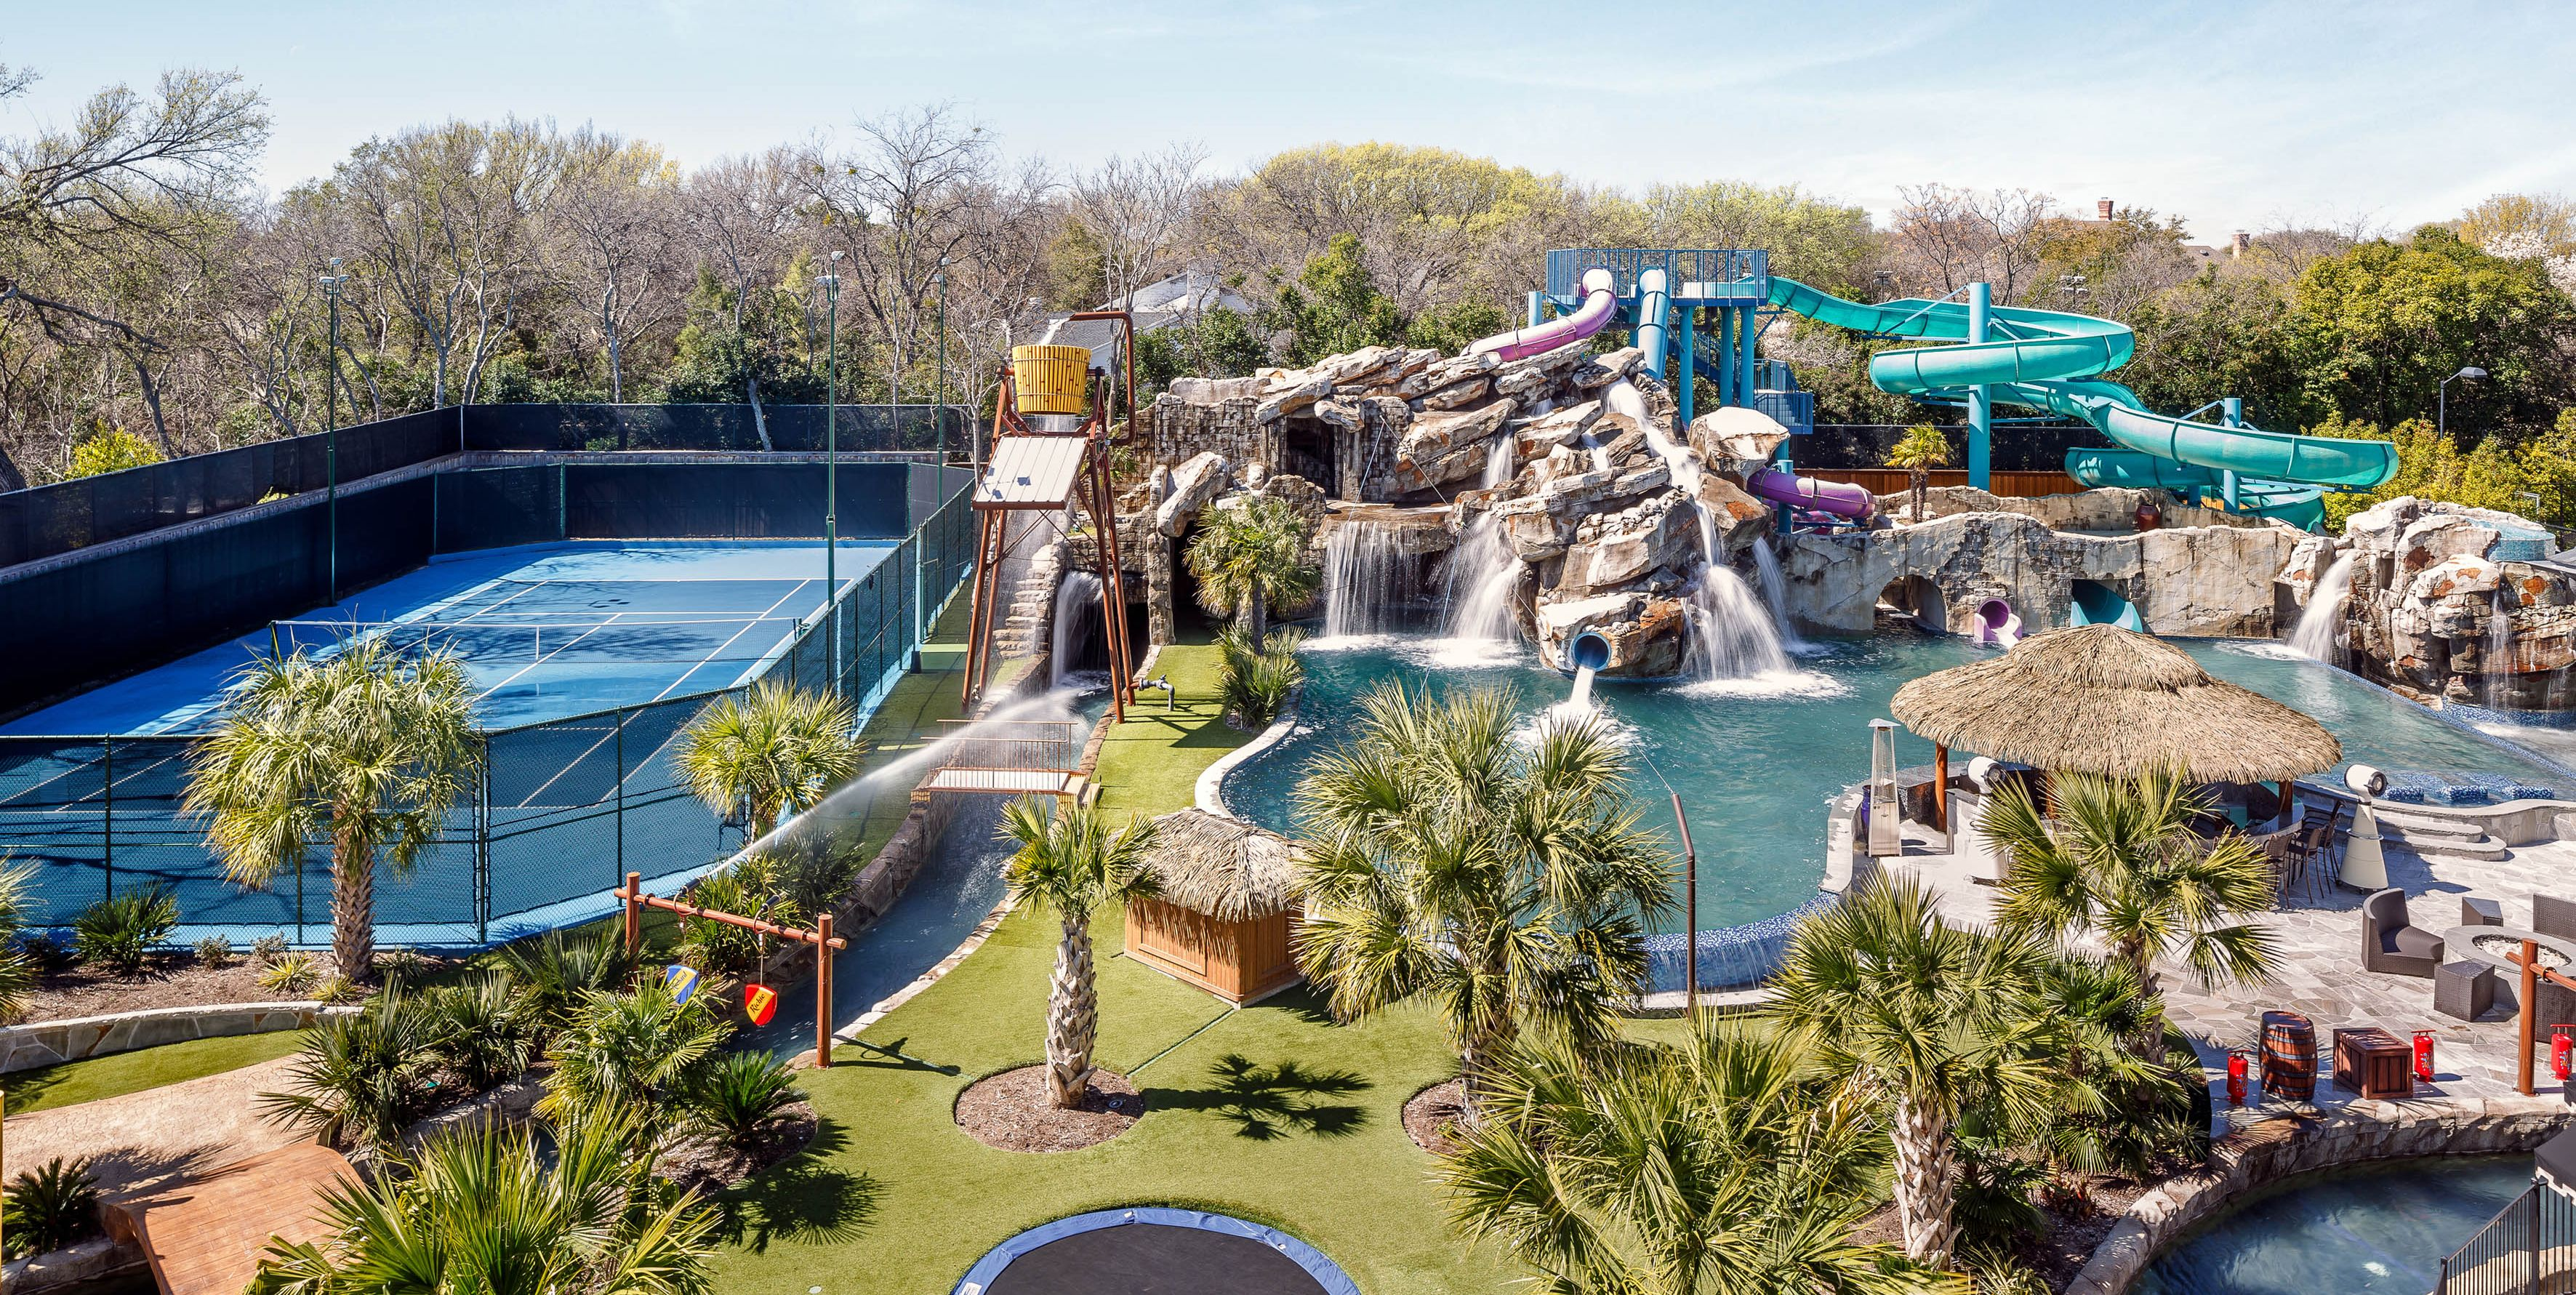 Water Slide In Backyard good news — this mansion with an unreal, private backyard water park